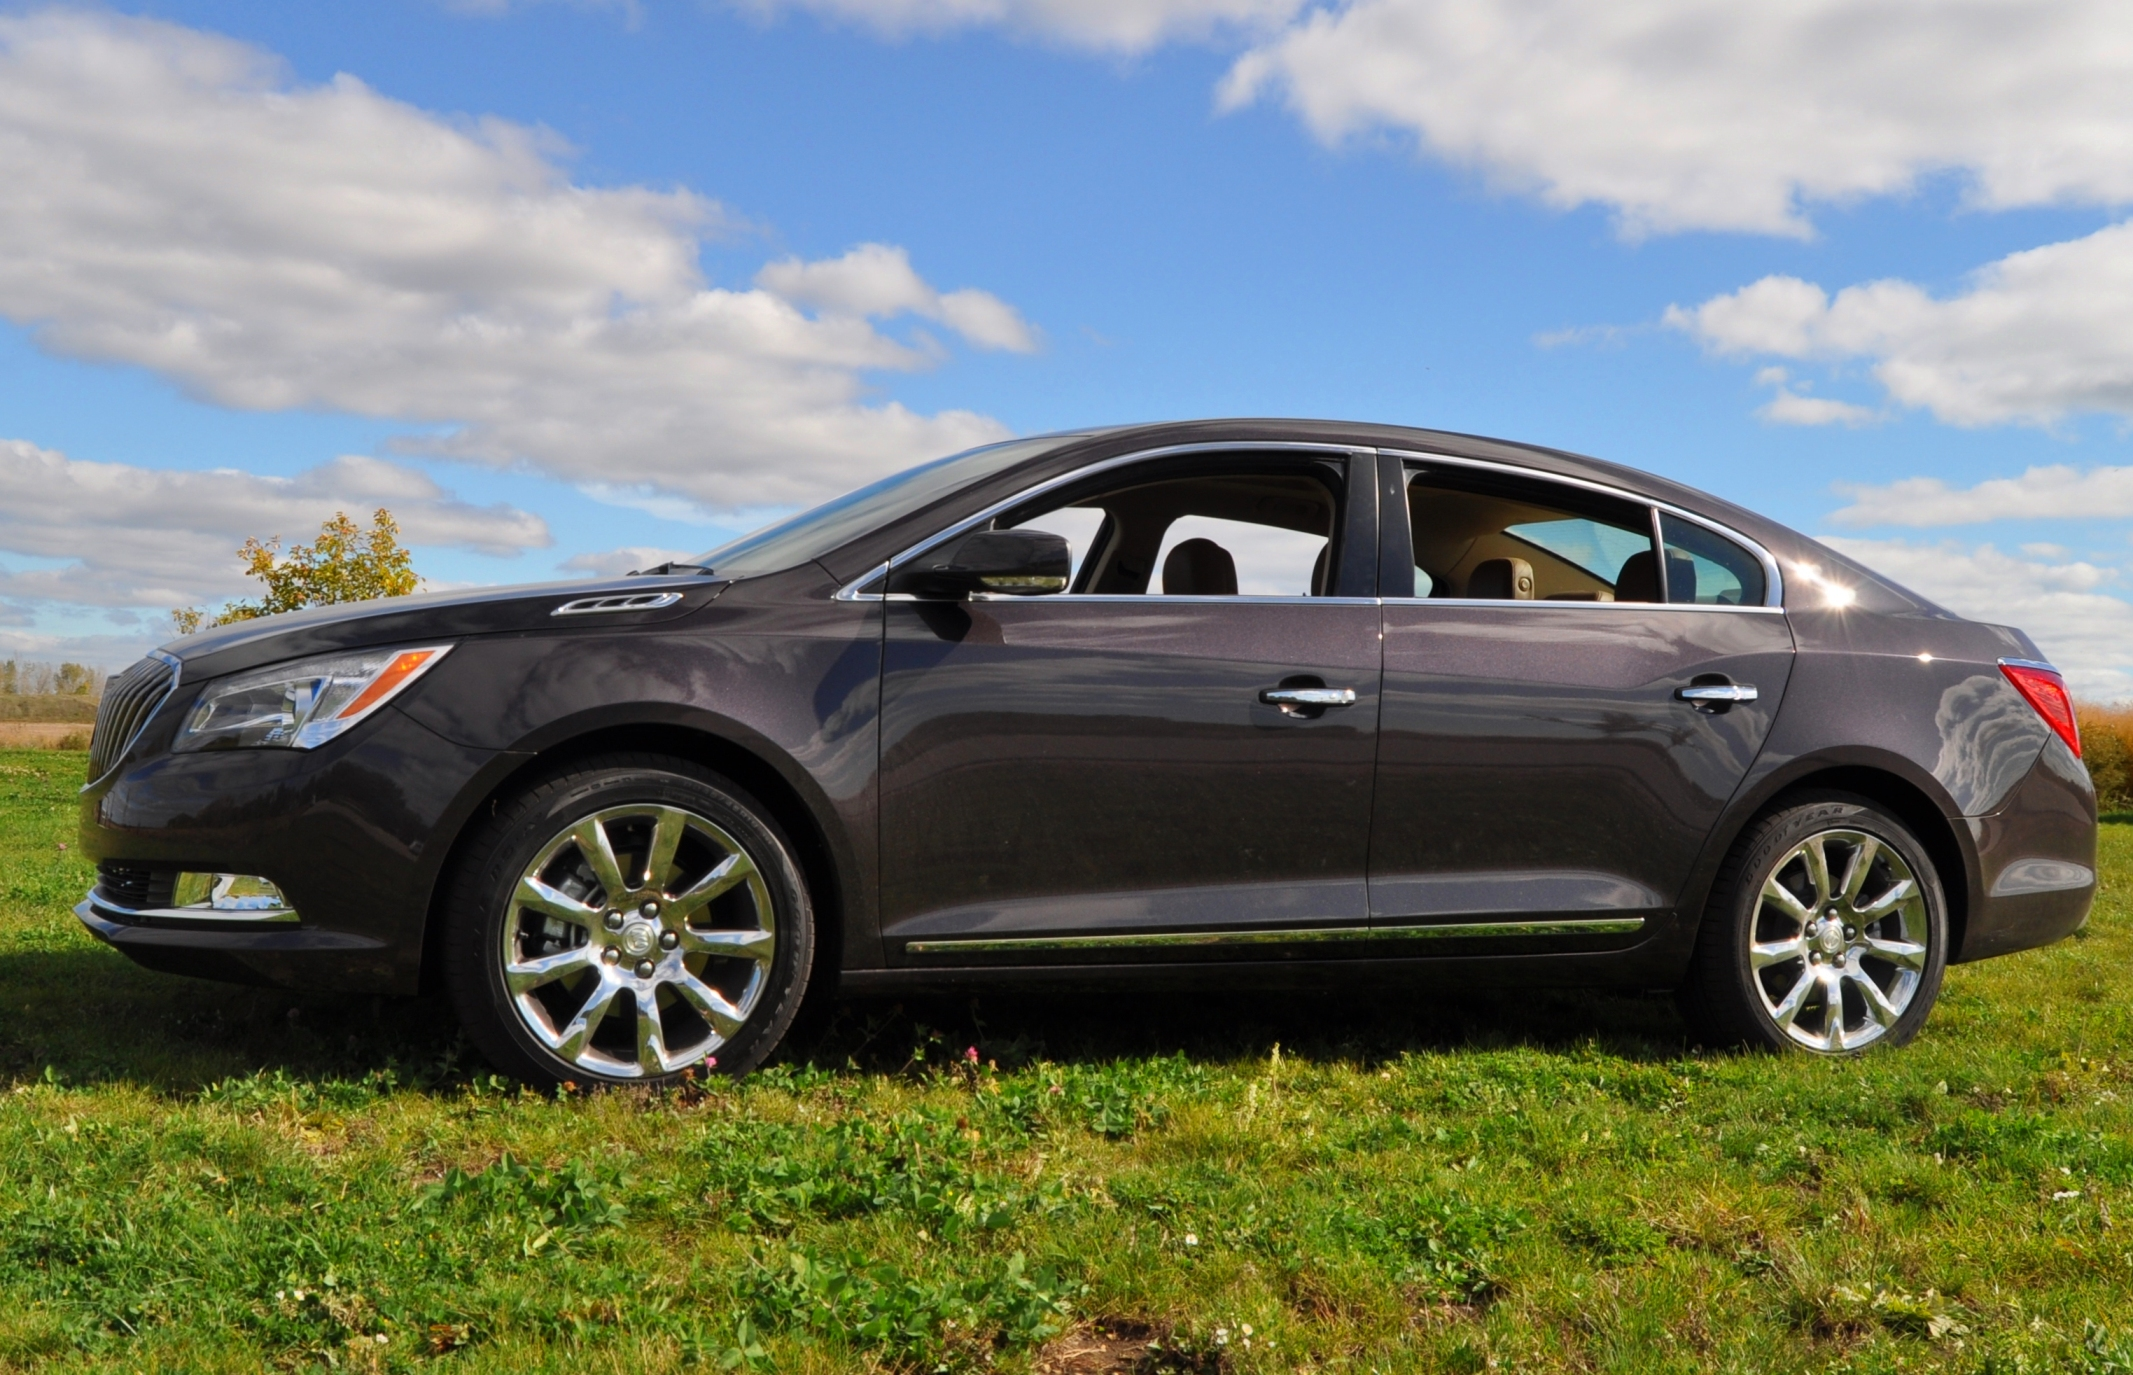 Chevrolet Cruze Owners Manual: Reporting Safety Defects to General Motors